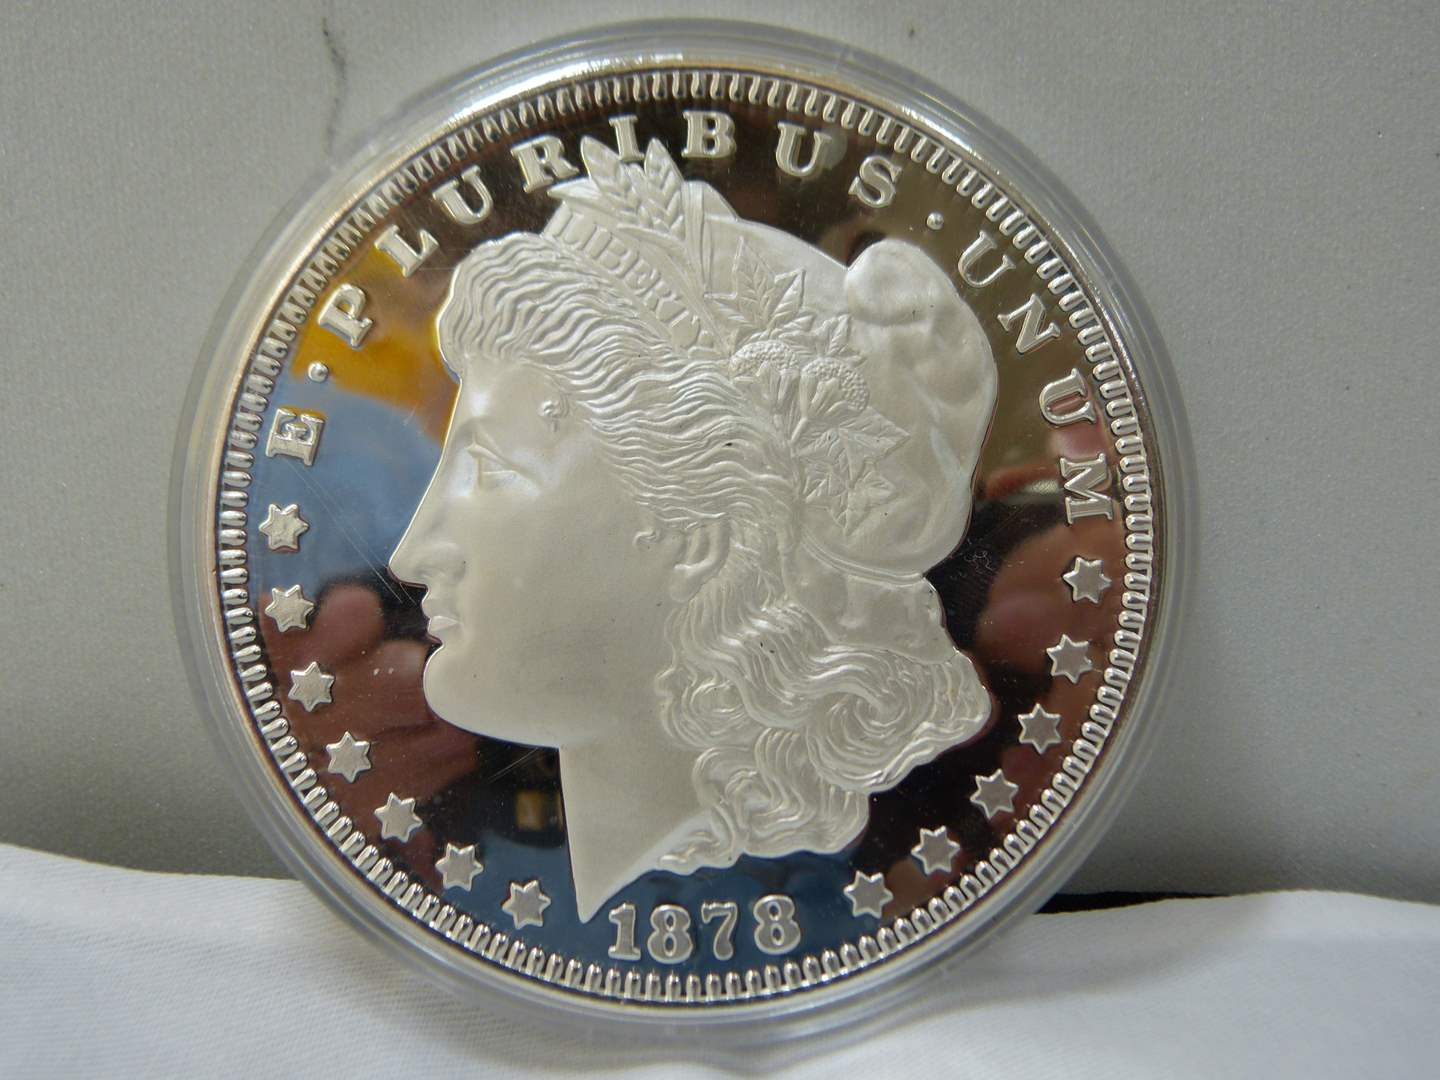 Lot # 151  WOW Limited Edition #00309 1/2 POUND PURE SILVER Morgan (YES HALF POUND) (main image)